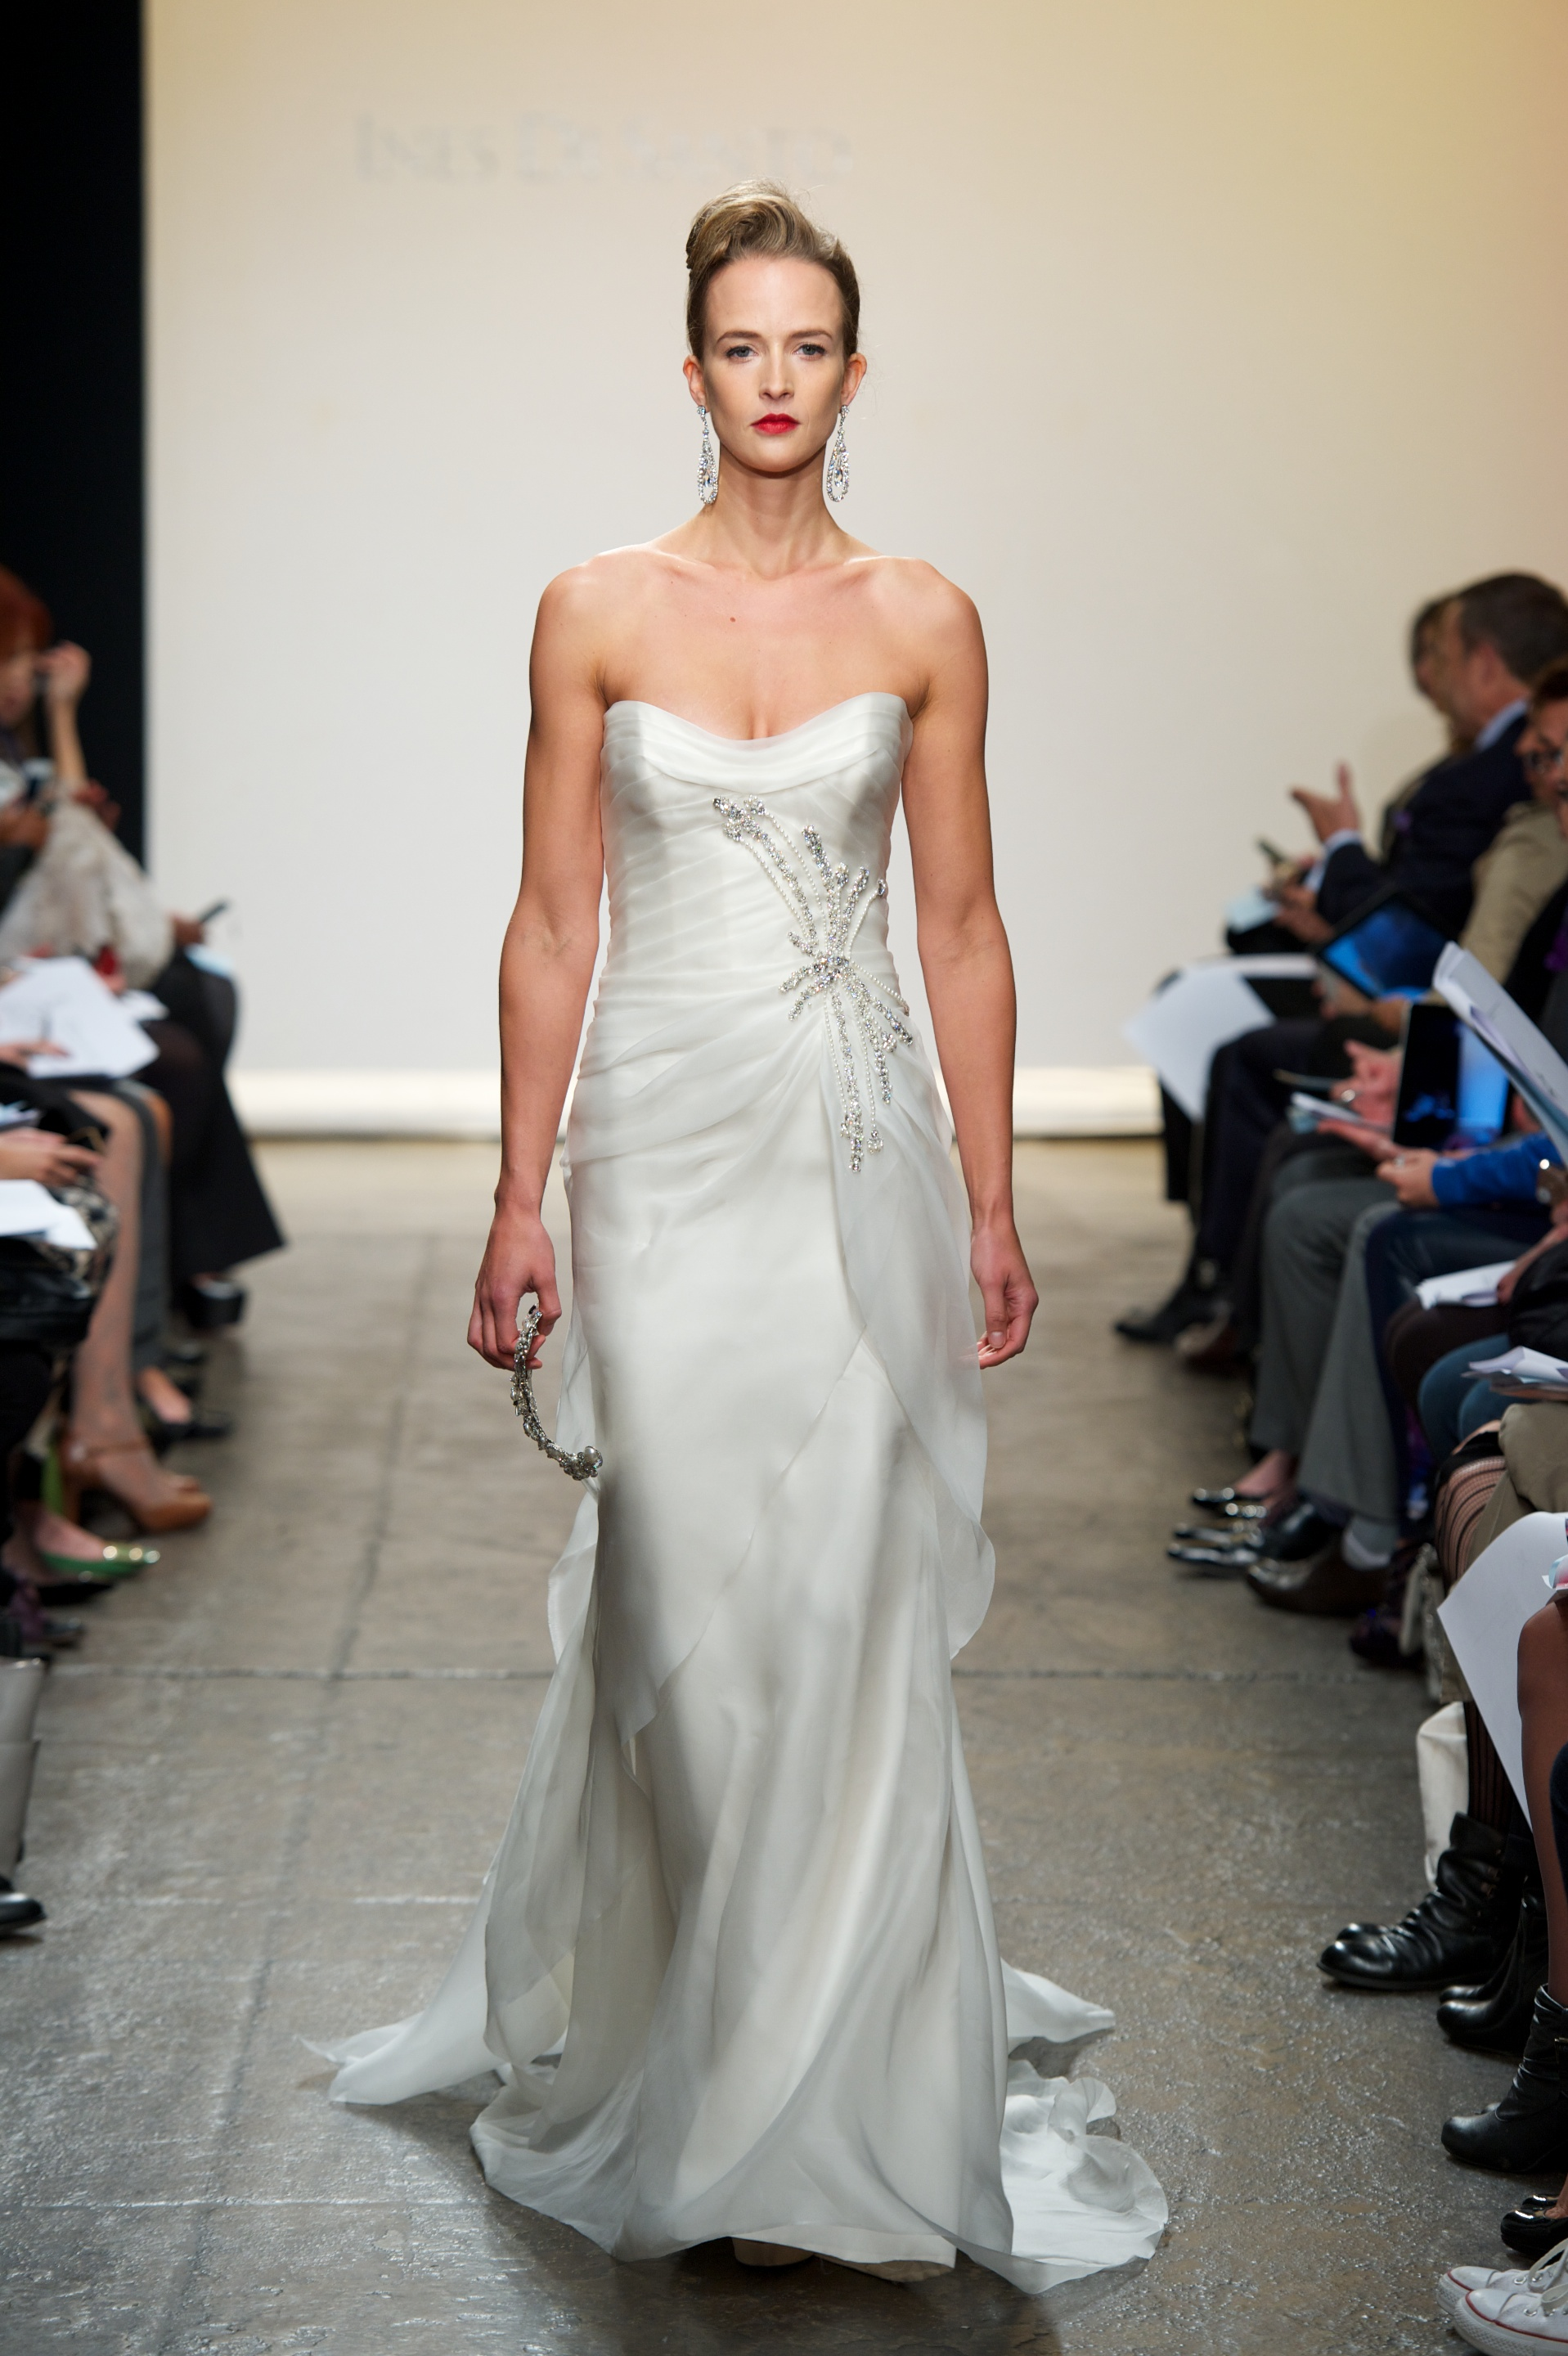 2013 wedding dress by ines di santo dama for Ines di santo wedding dress